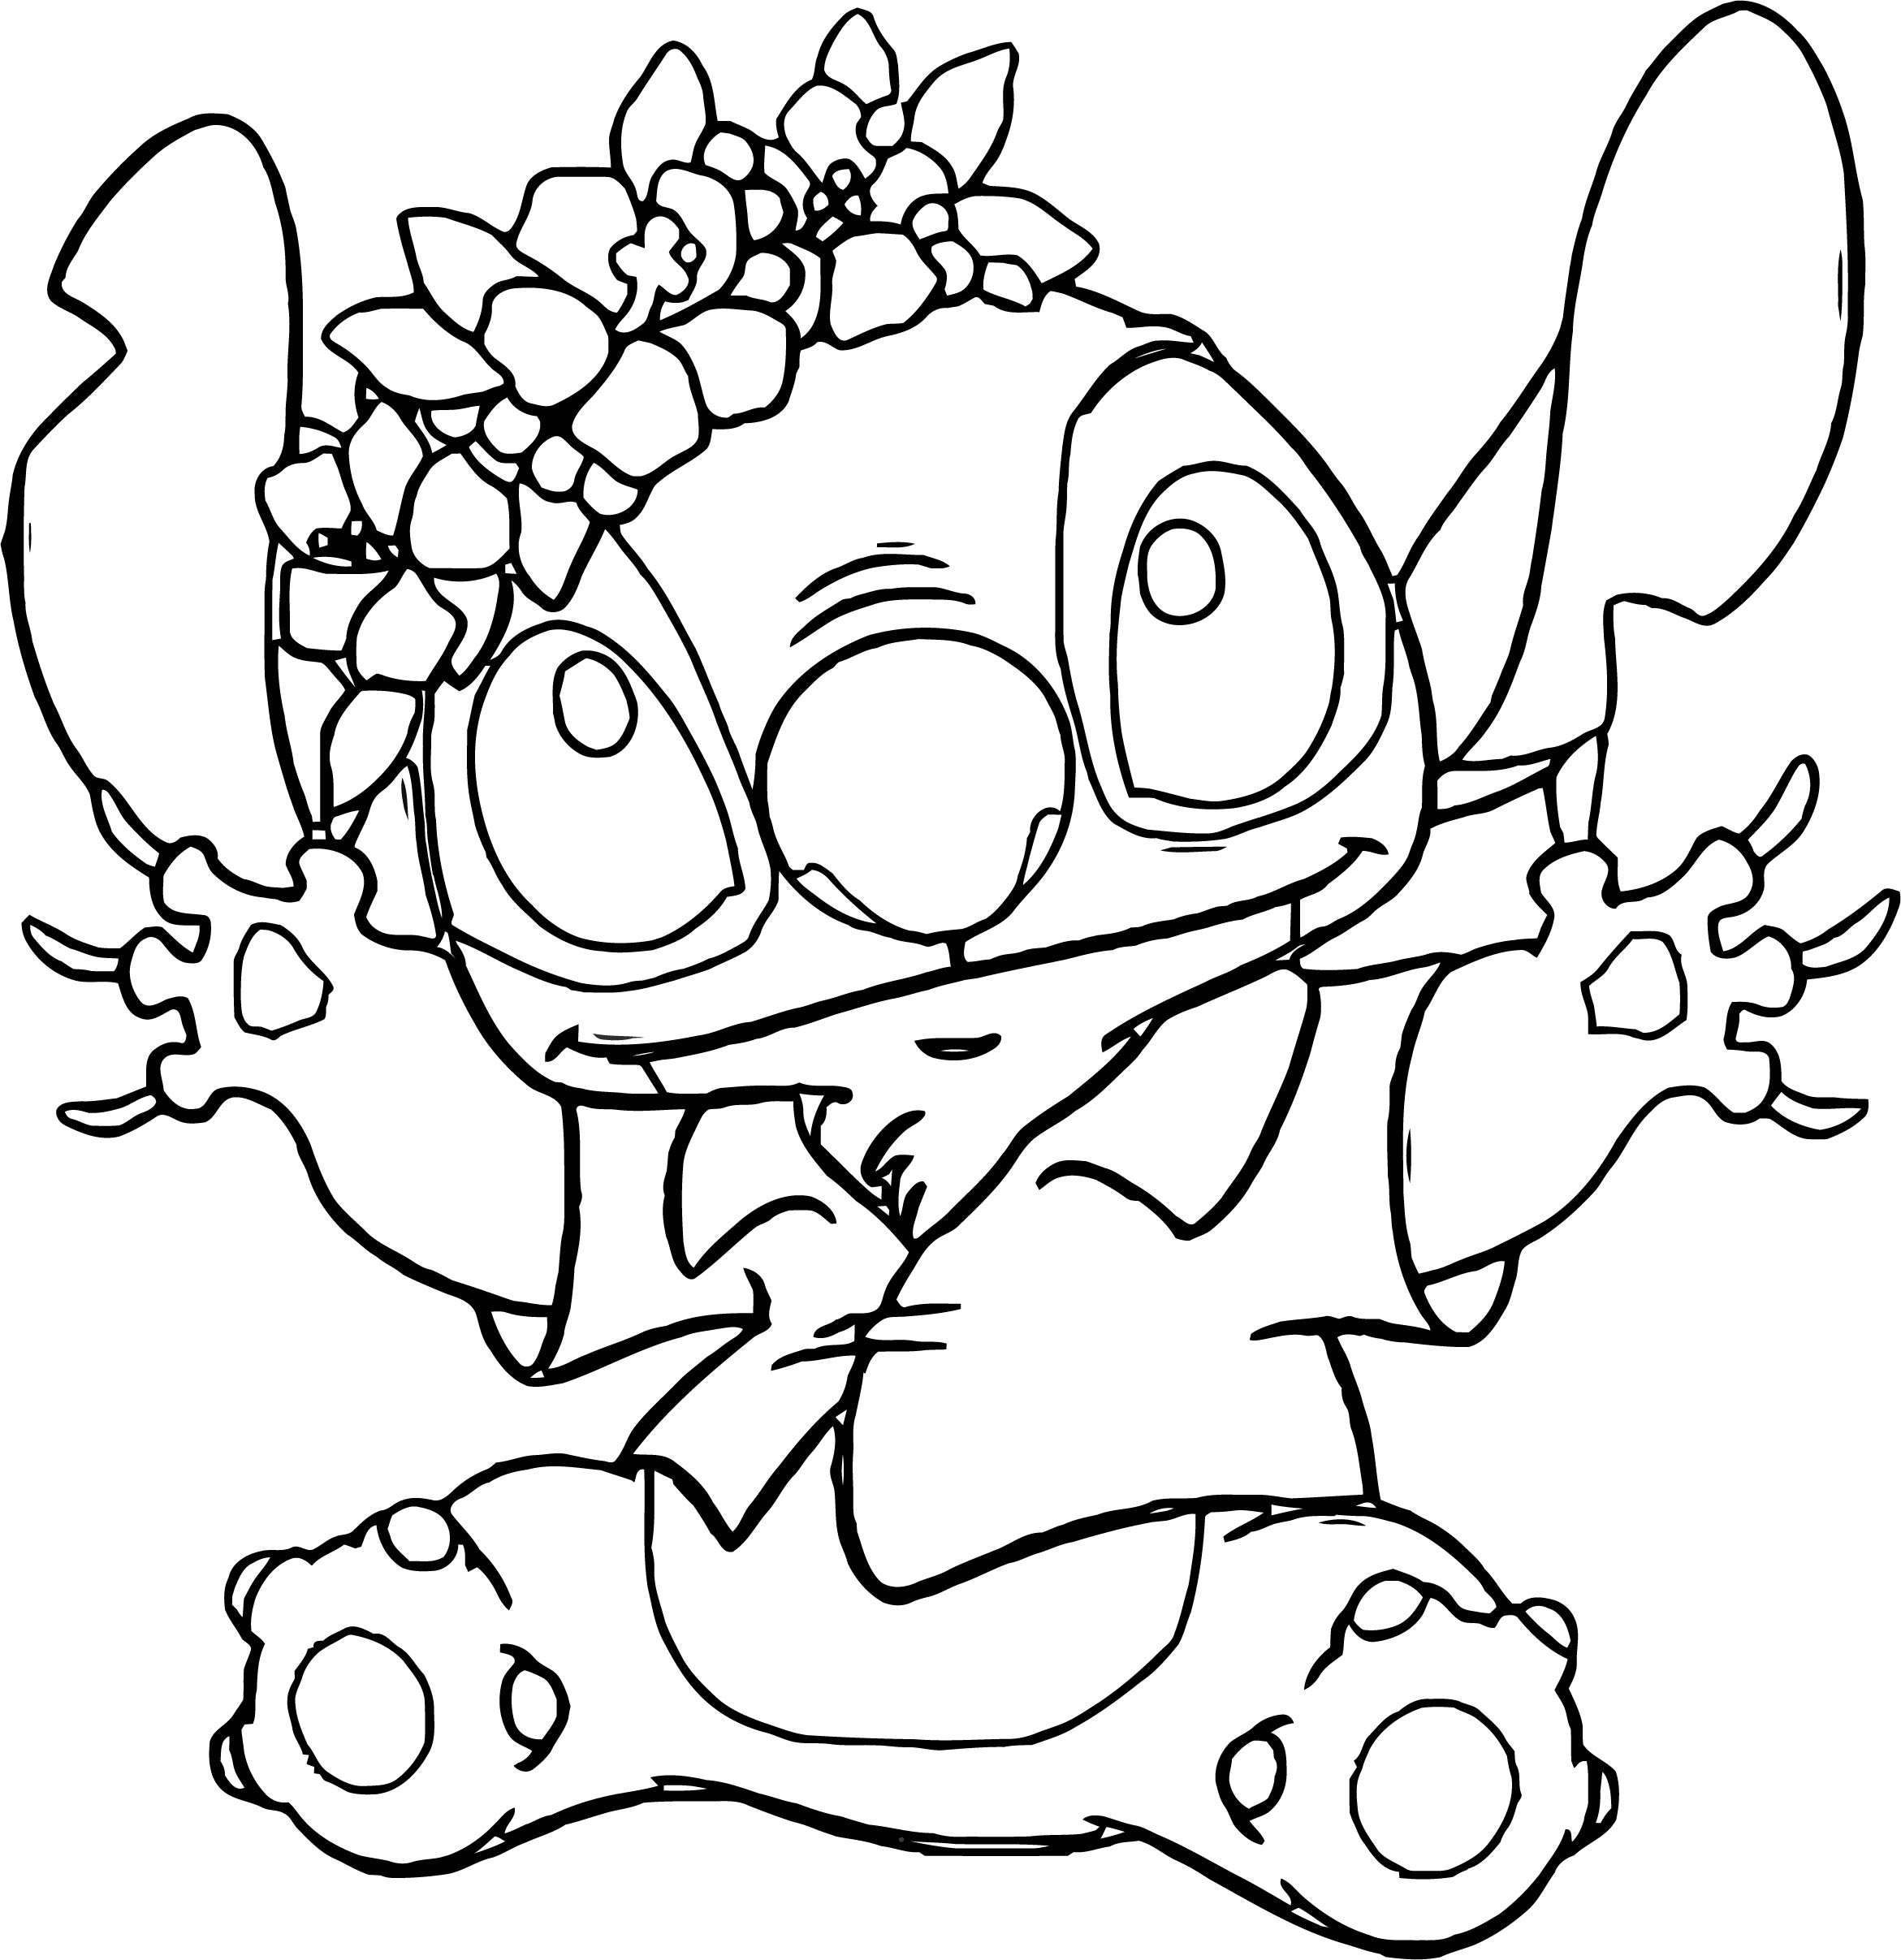 Lilo And Stitch Flower On Head Coloring Pages